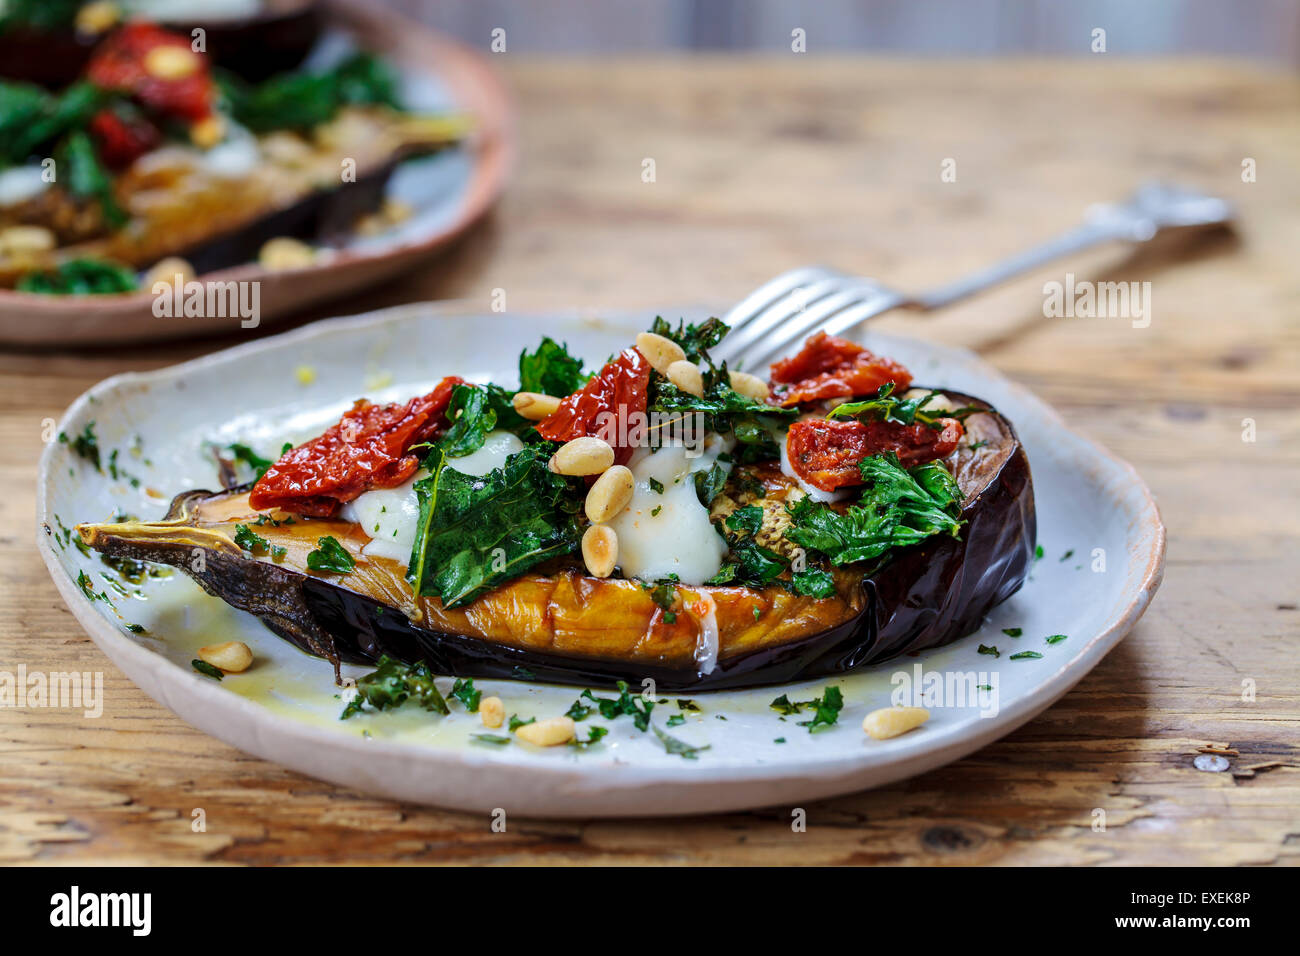 Roast aubergine with goat cheese, crispy kale, sun dried tomatoes and pine nuts - Stock Image